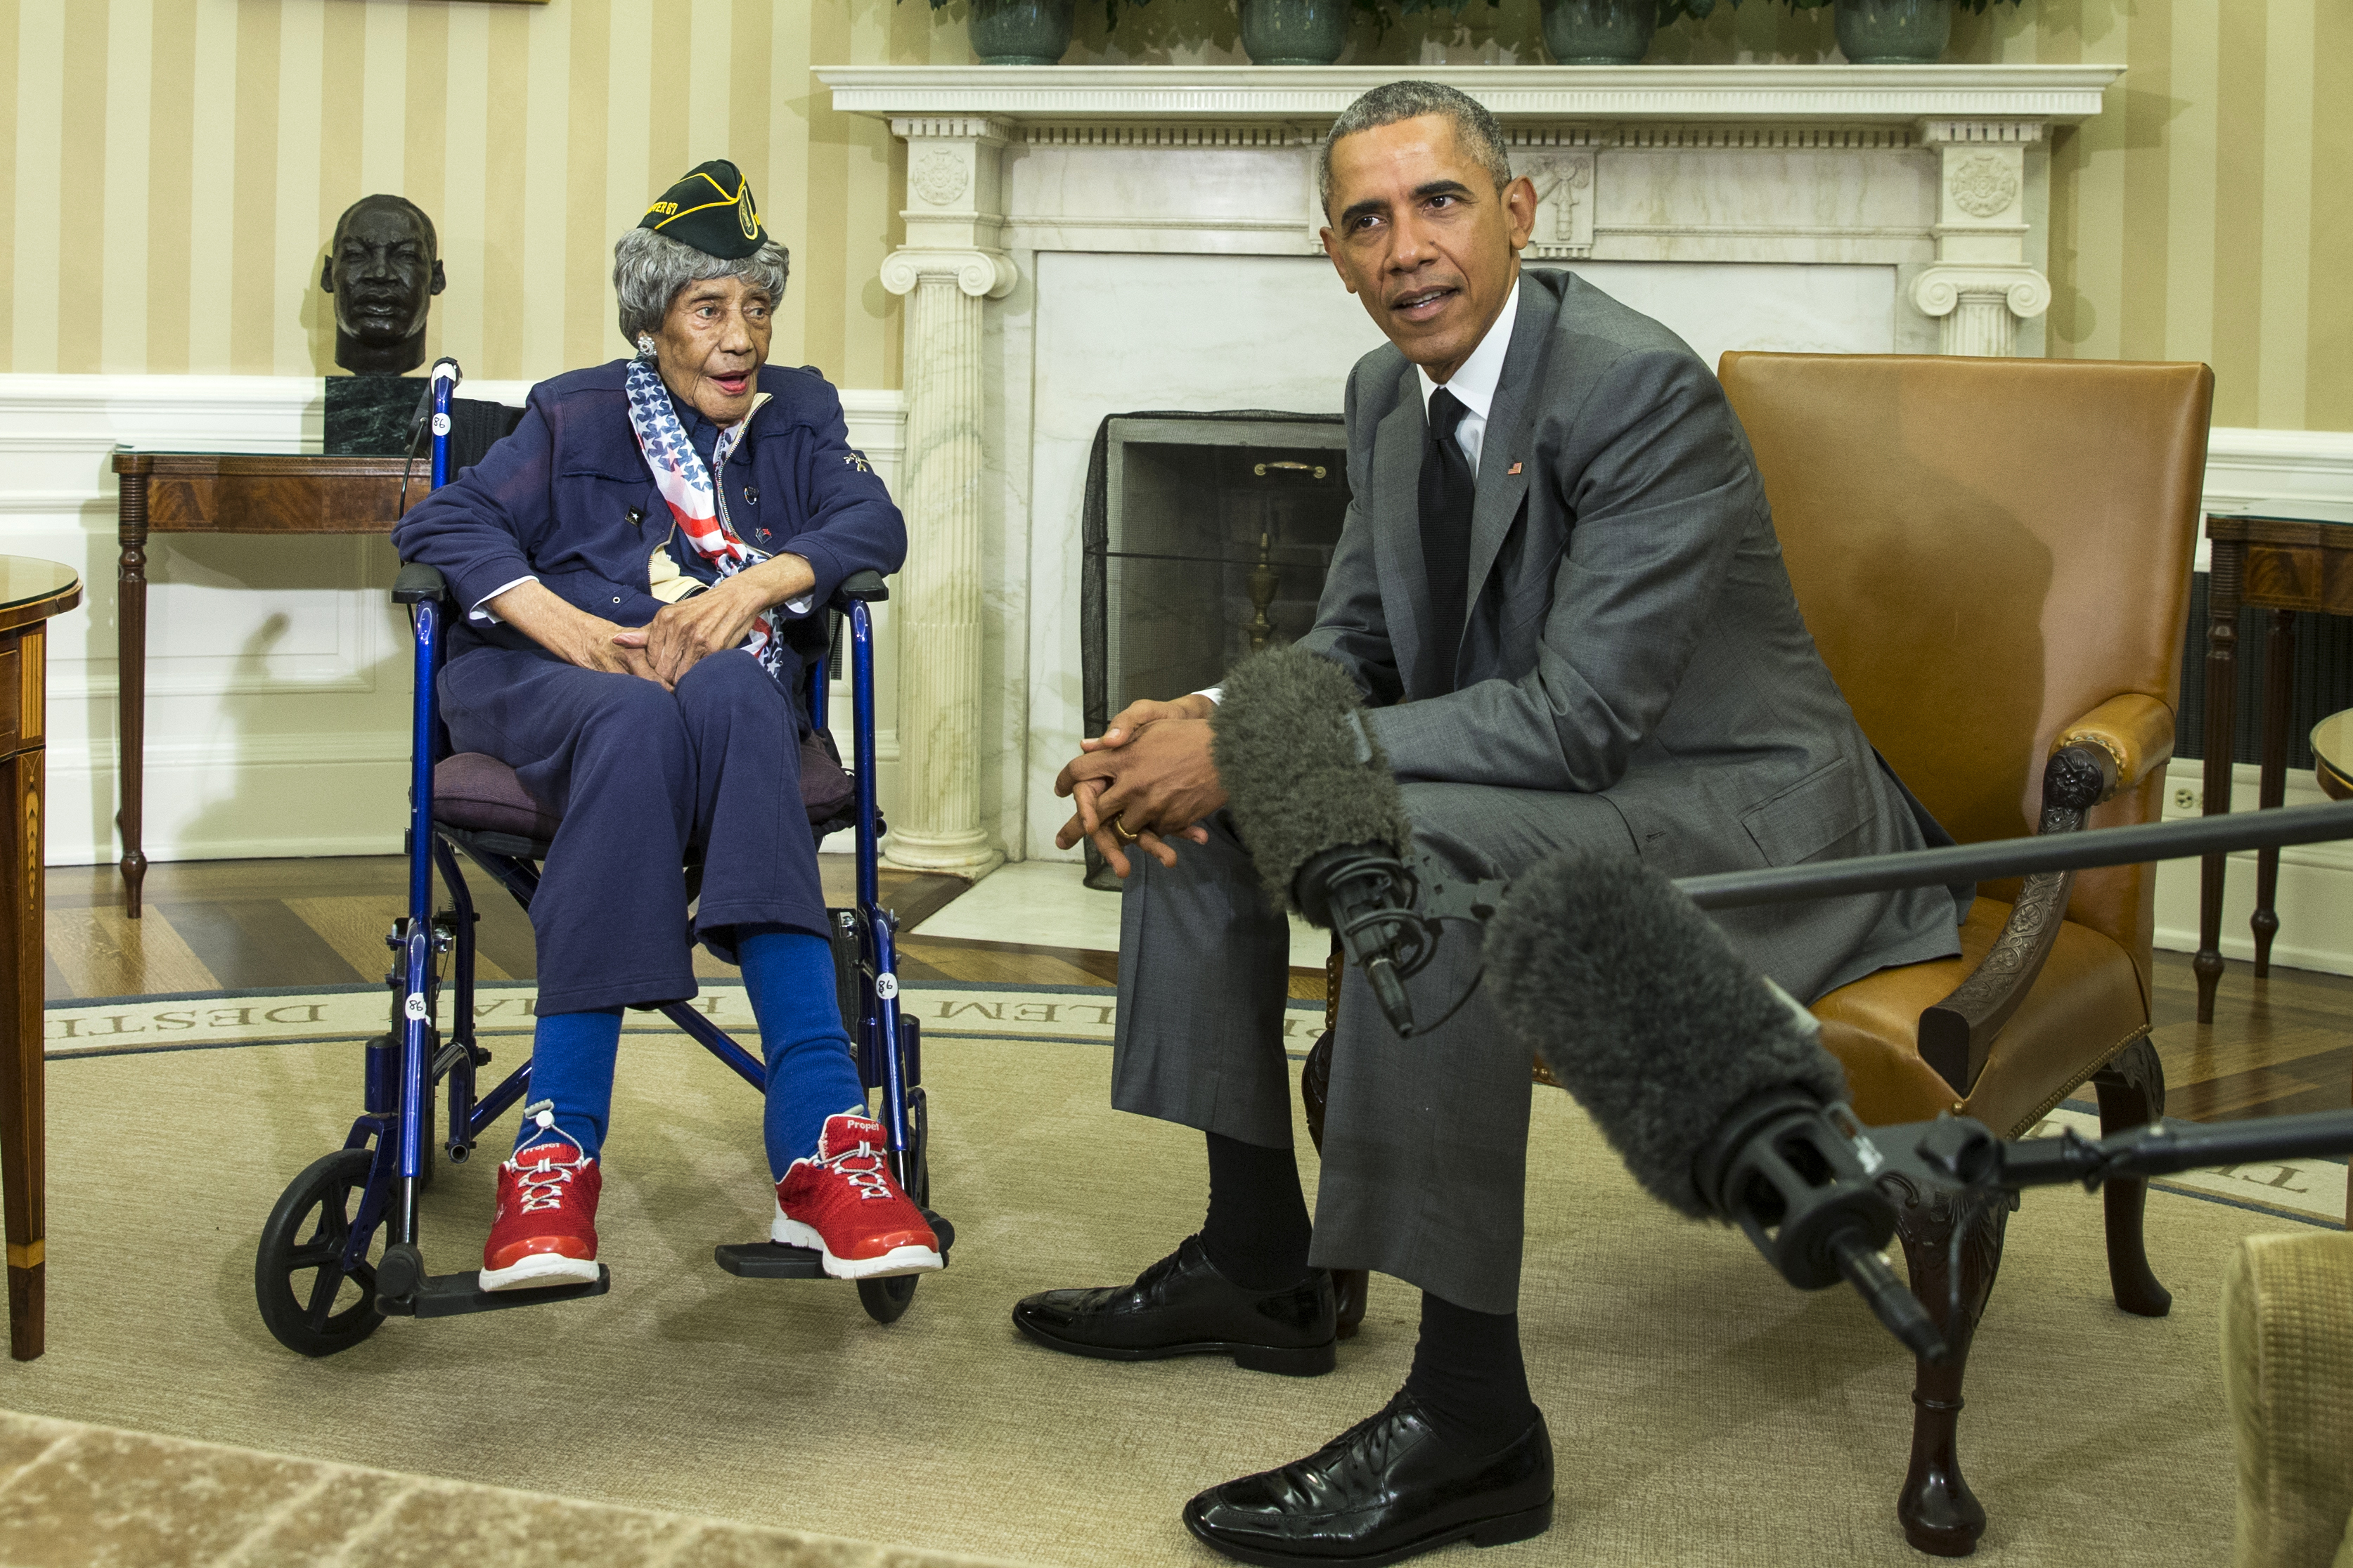 oval office july 2015. President Barack Obama Meets With Emma Didlake, 110, Of Detroit, The Oldest Known Oval Office July 2015 0